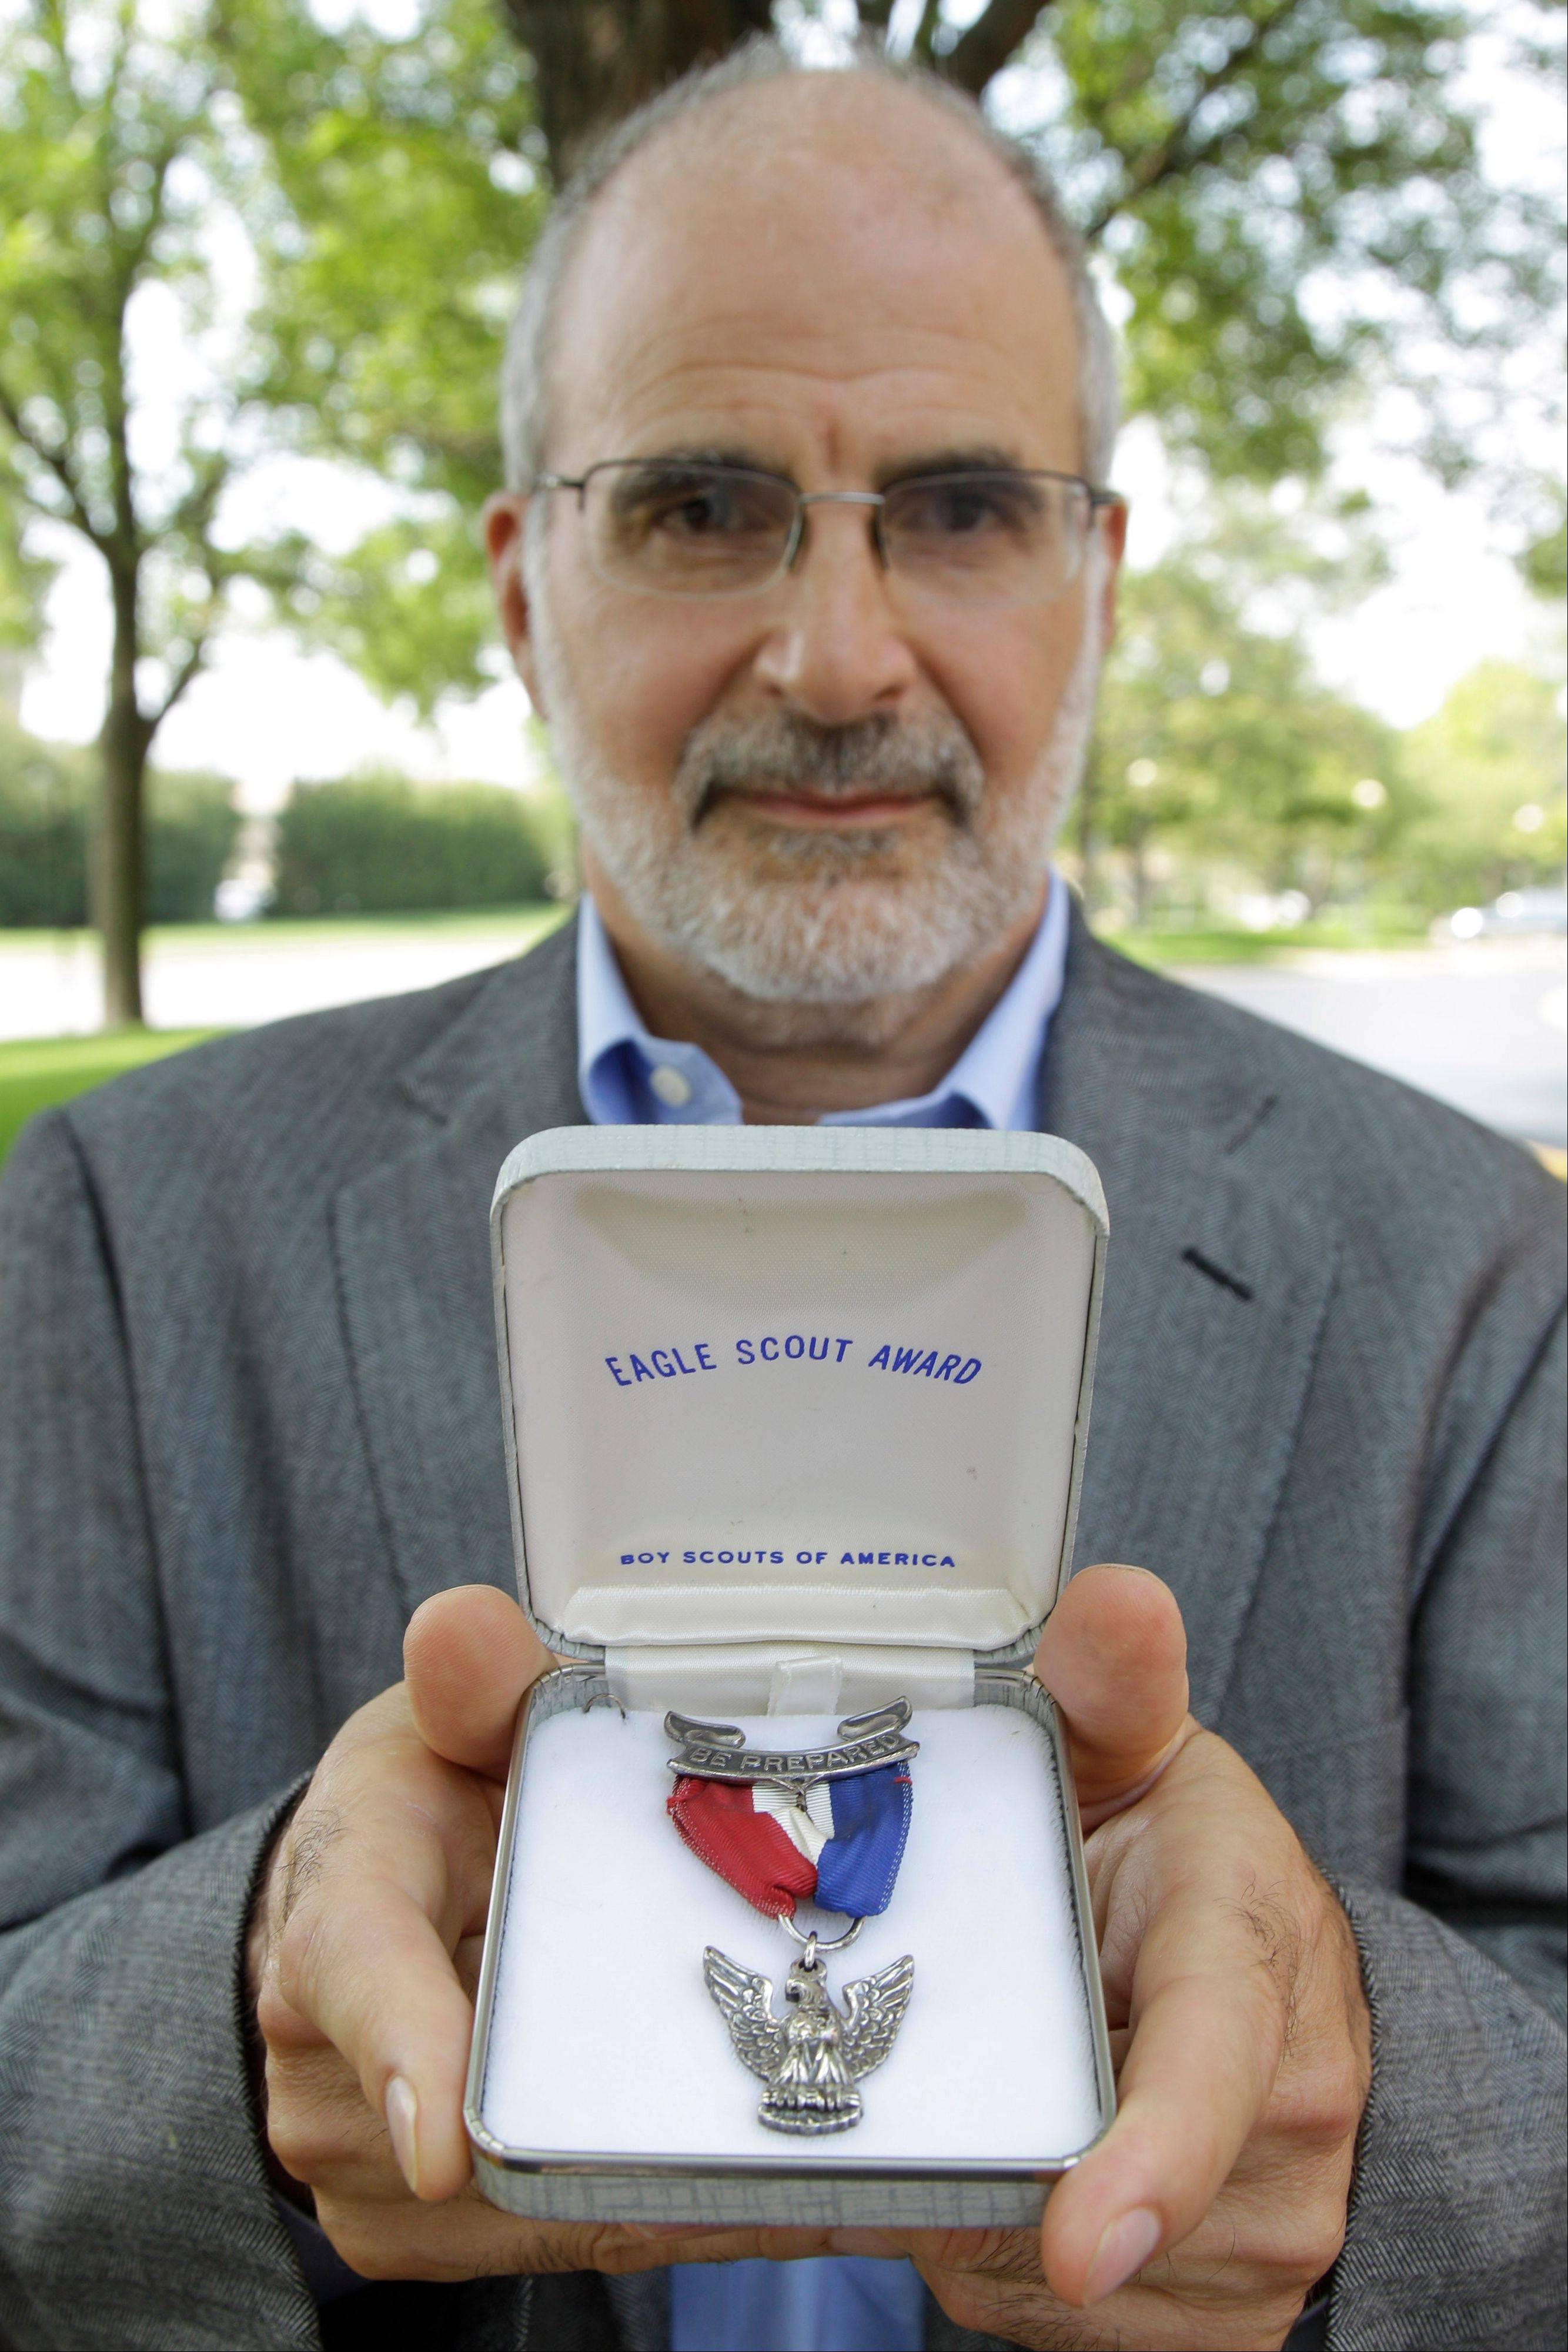 Dr. Robert Wise holds his Eagle Scout medal in Oakbrook Terrace. Wise, 59, is among several dozen former Eagle Scouts who are relinquishing their medals following the July 17 announcement that the Boy Scouts of America, after a confidential two-year review, was sticking with the divisive, long-standing policy of excluding openly gay youth and adults as members and leaders.